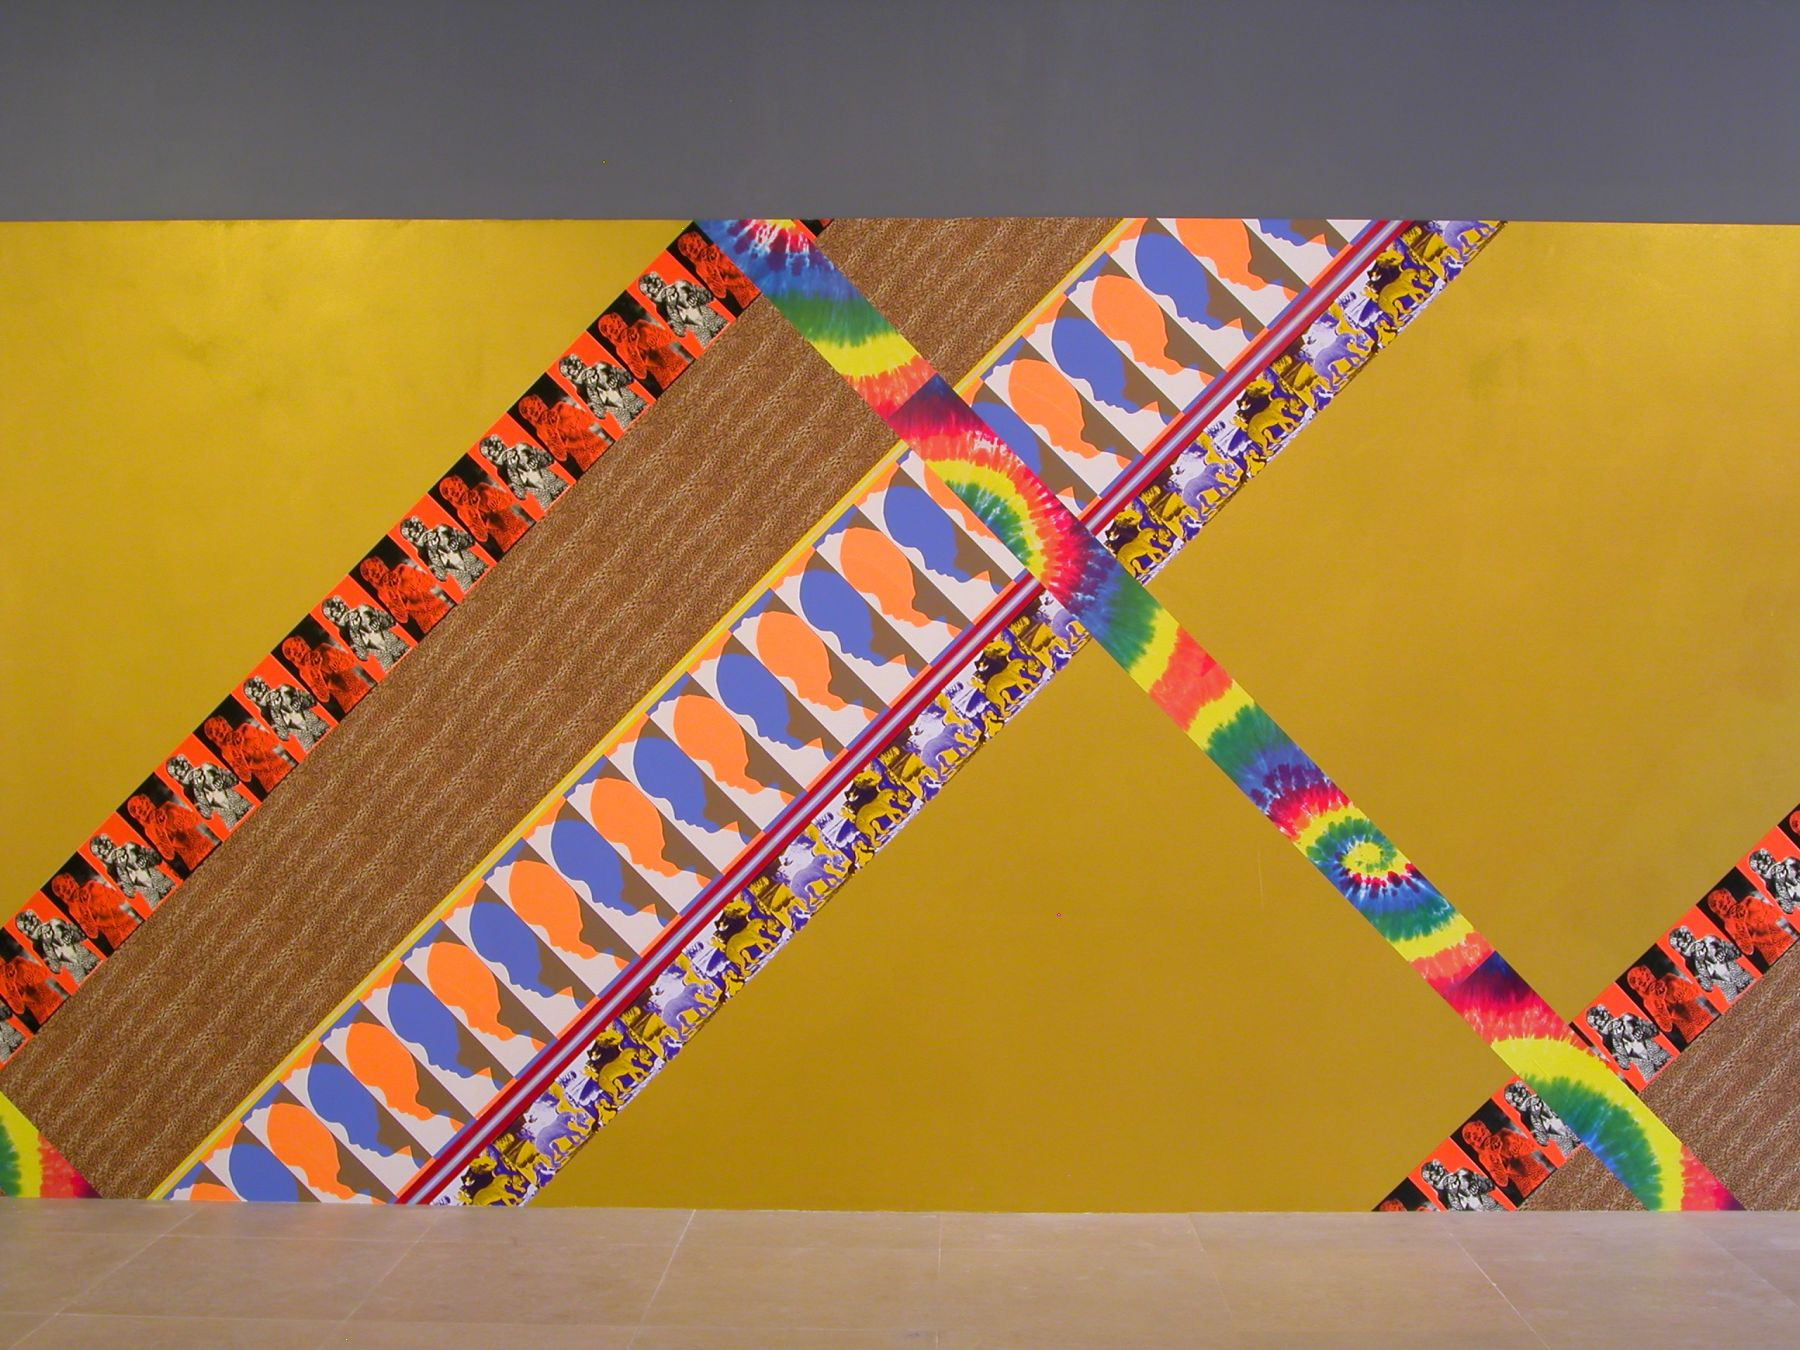 jim drain, I Would Gnaw on My Hand (main gallery), 2007, Silkscreen on paper, latex paint, Dimensions variable